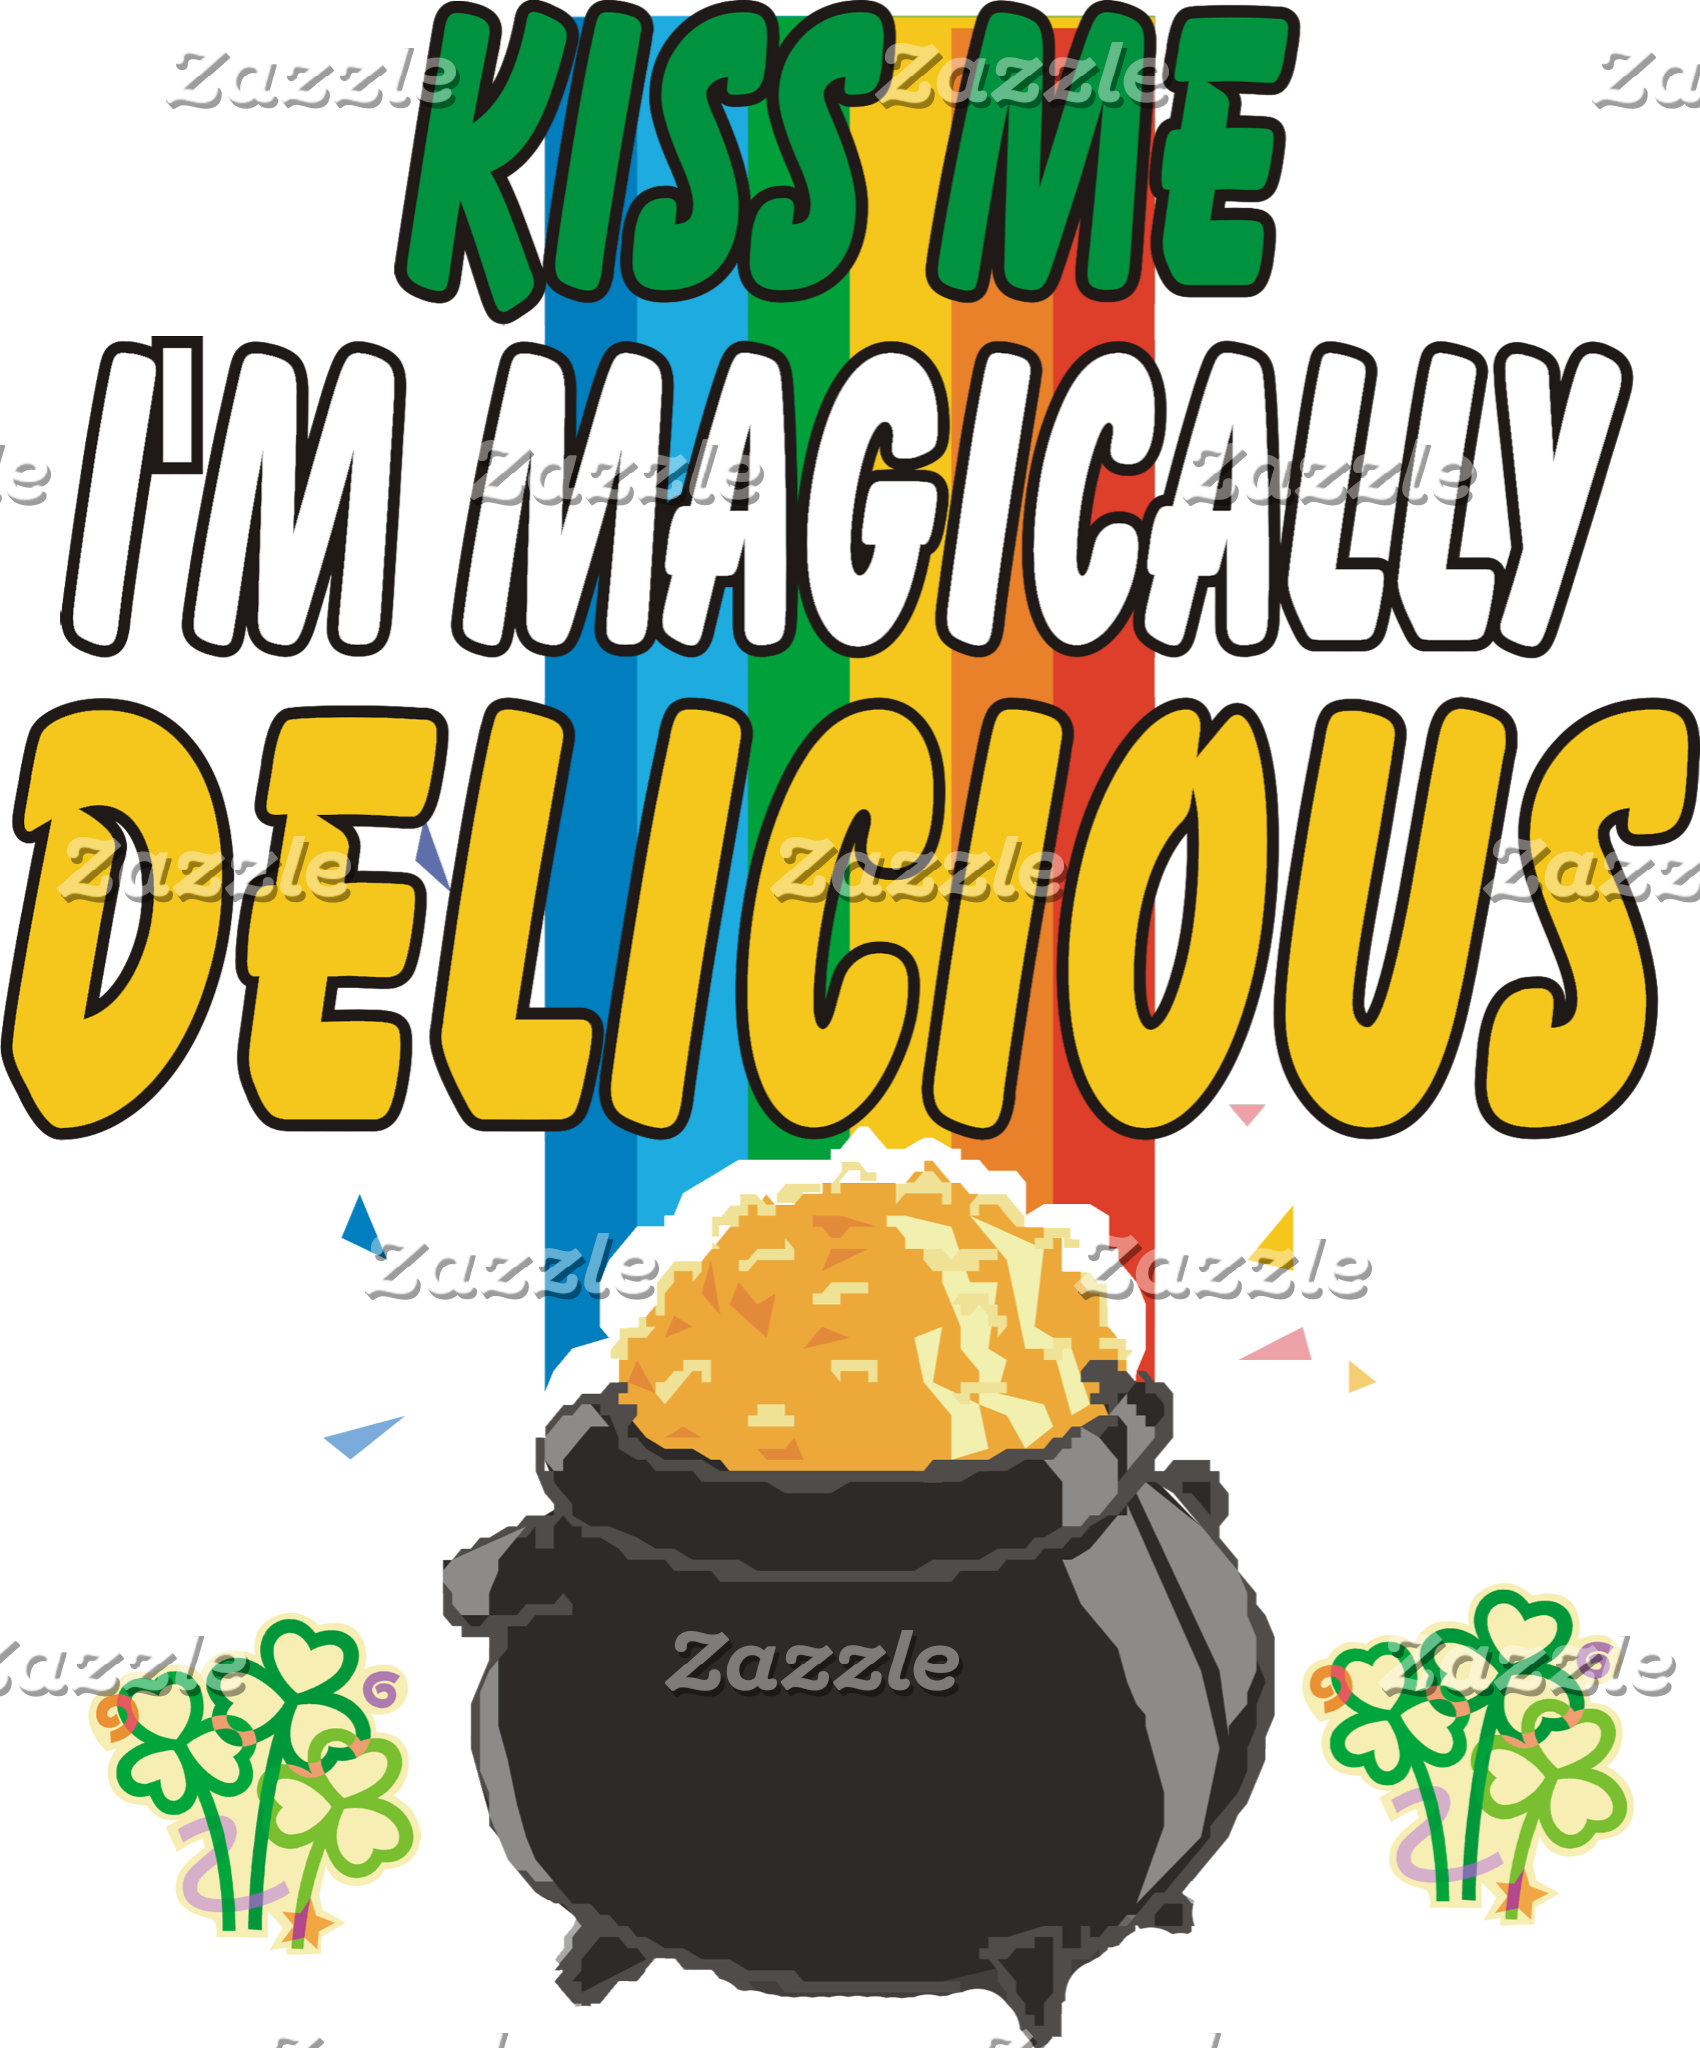 Irish - Kiss Me I'm Magically Delicious T-Shirt